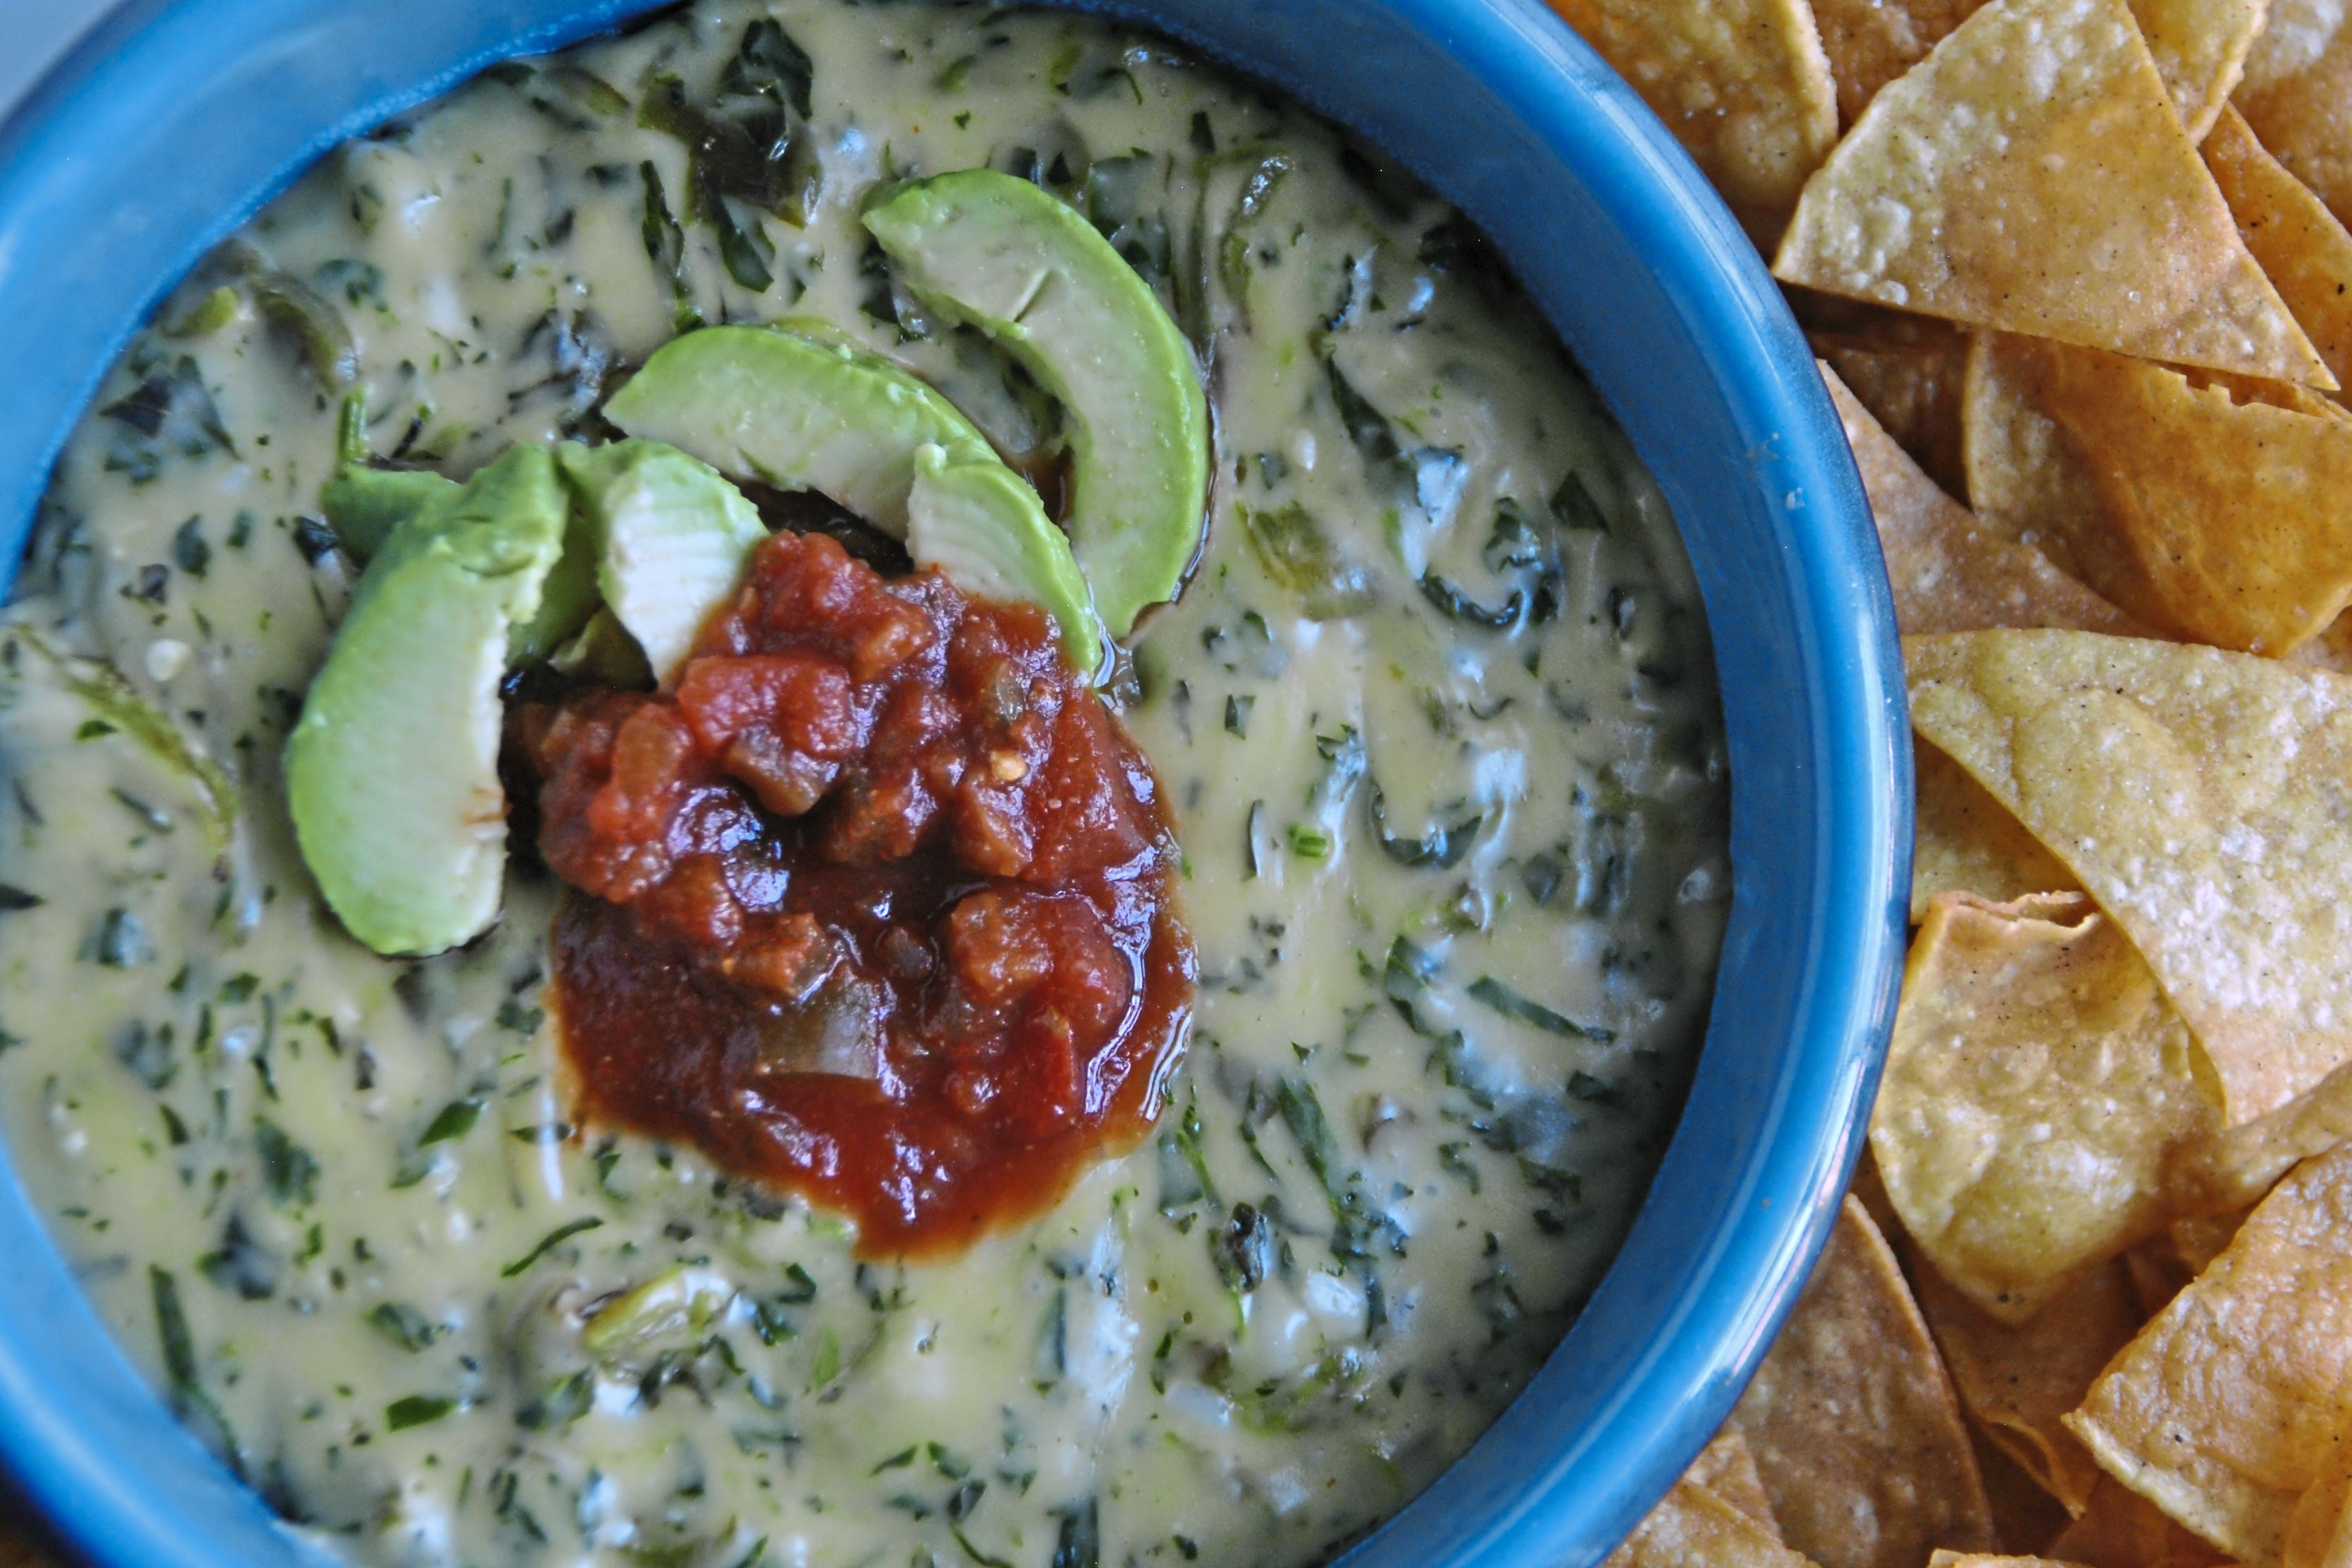 spinach queso 1-2 Stay home on New Year's Eve and enjoy Spinach Queso.